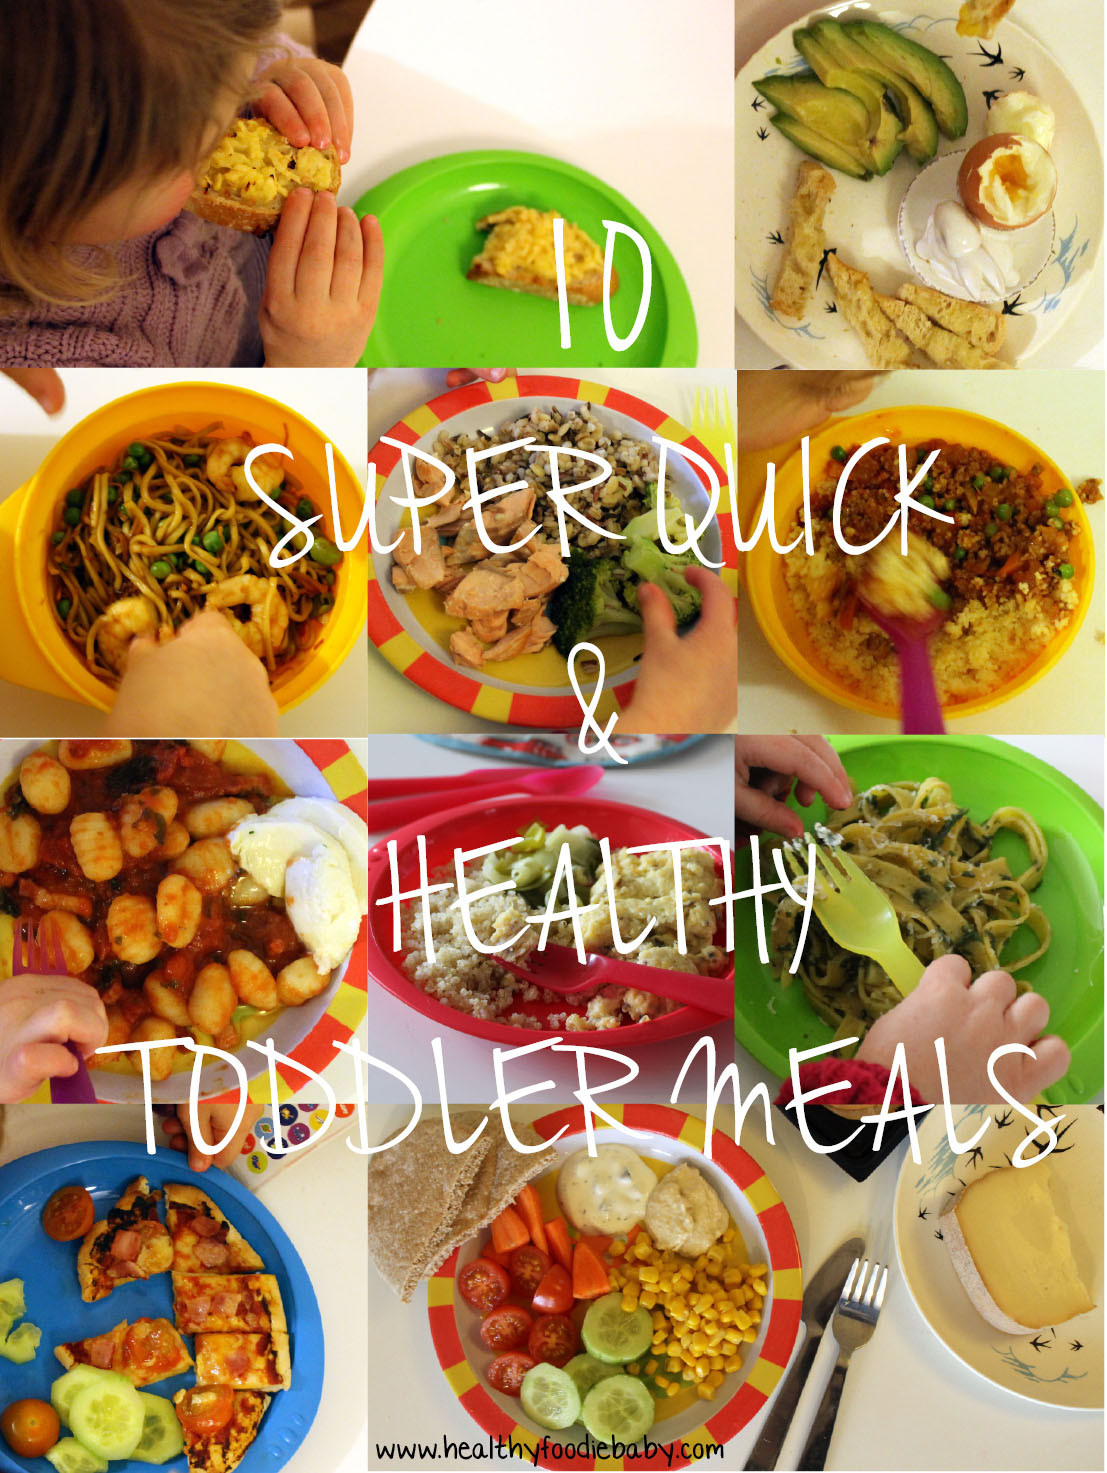 Toddler Dinner Ideas  10 Super Quick & Healthy Toddler Meals – Healthyfoo baby